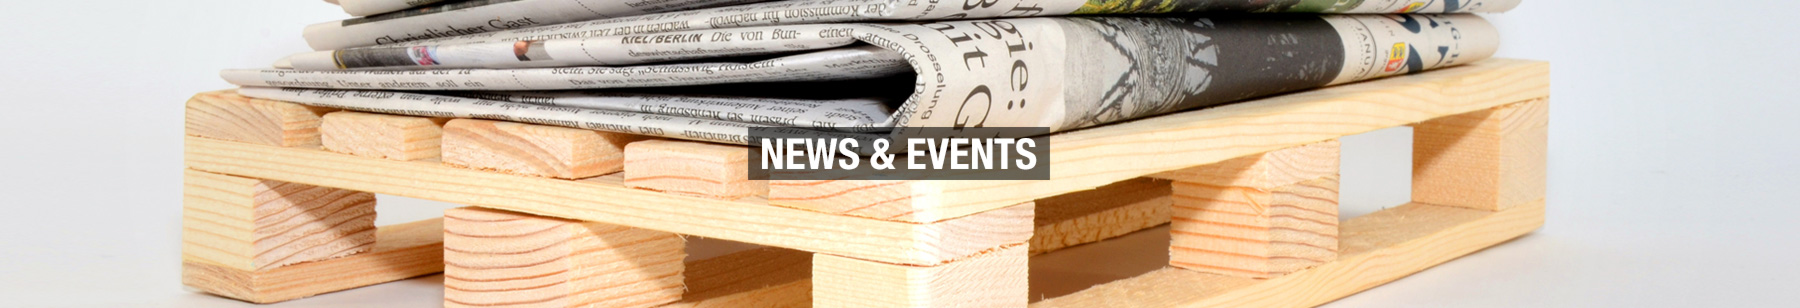 Material Handling Equipment - News and Events - York County PA - Harford - Baltimore - Howard County MD - Mid-Atlantic Region